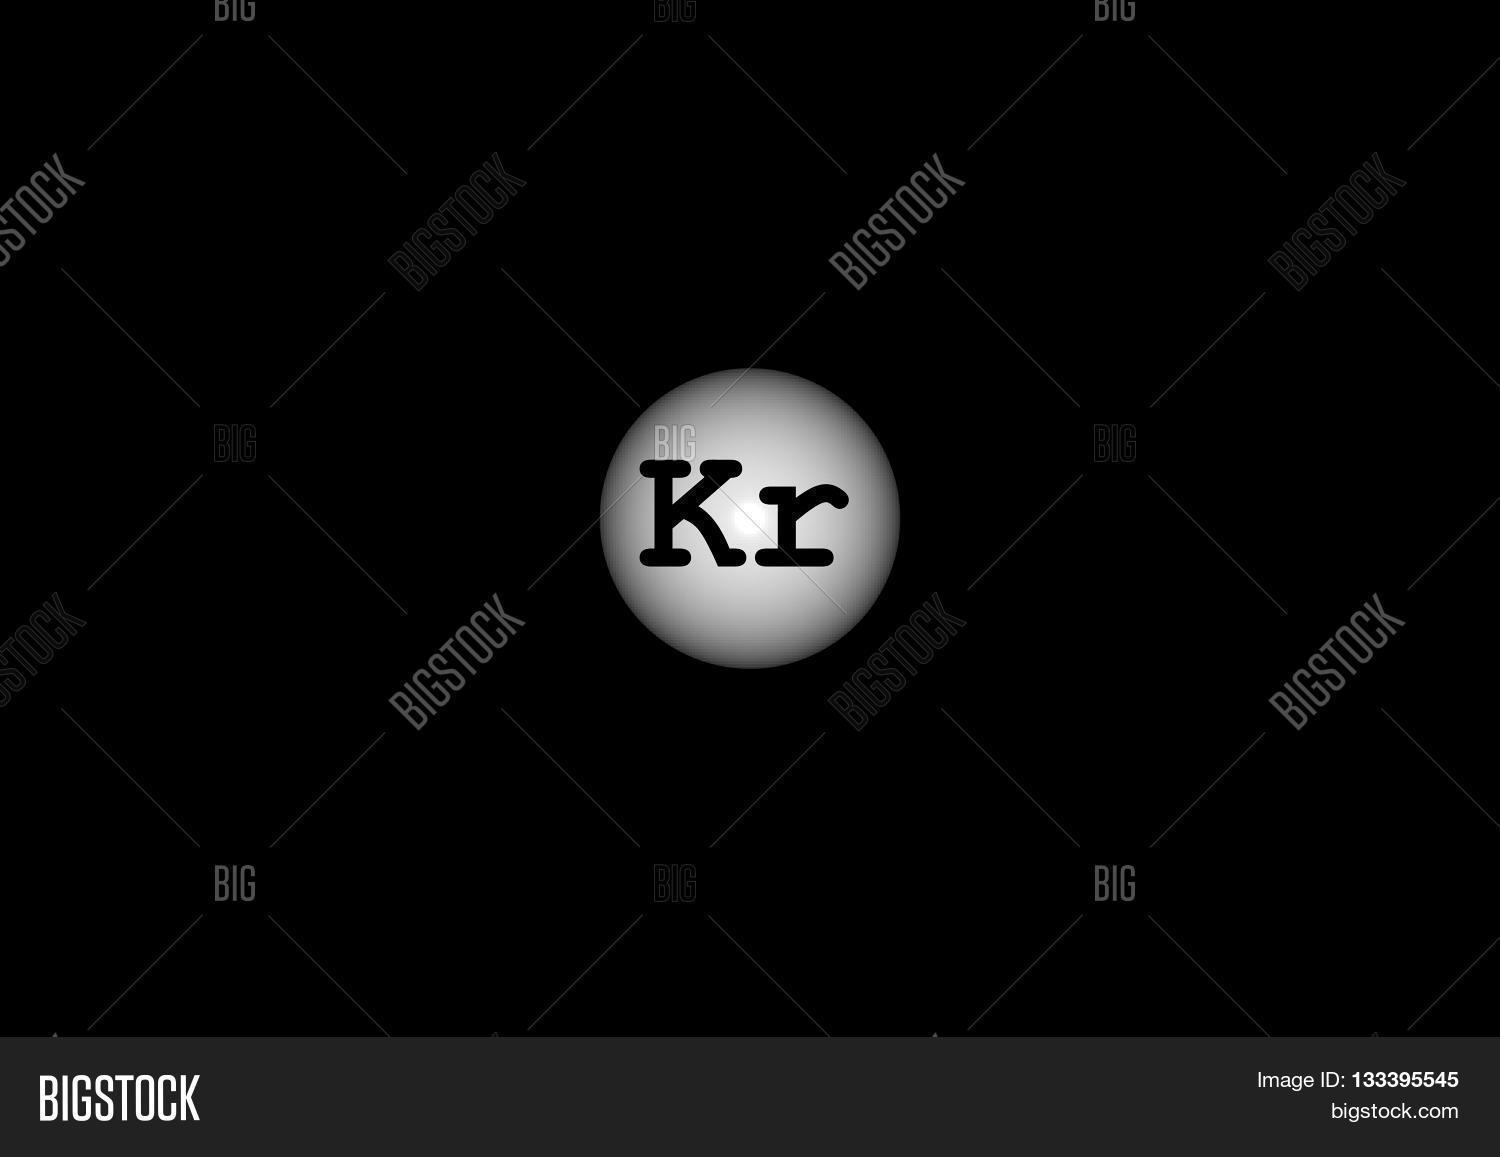 Krypton chemical element atomic image photo bigstock krypton is a chemical element with atomic number 36 it is a member of group buycottarizona